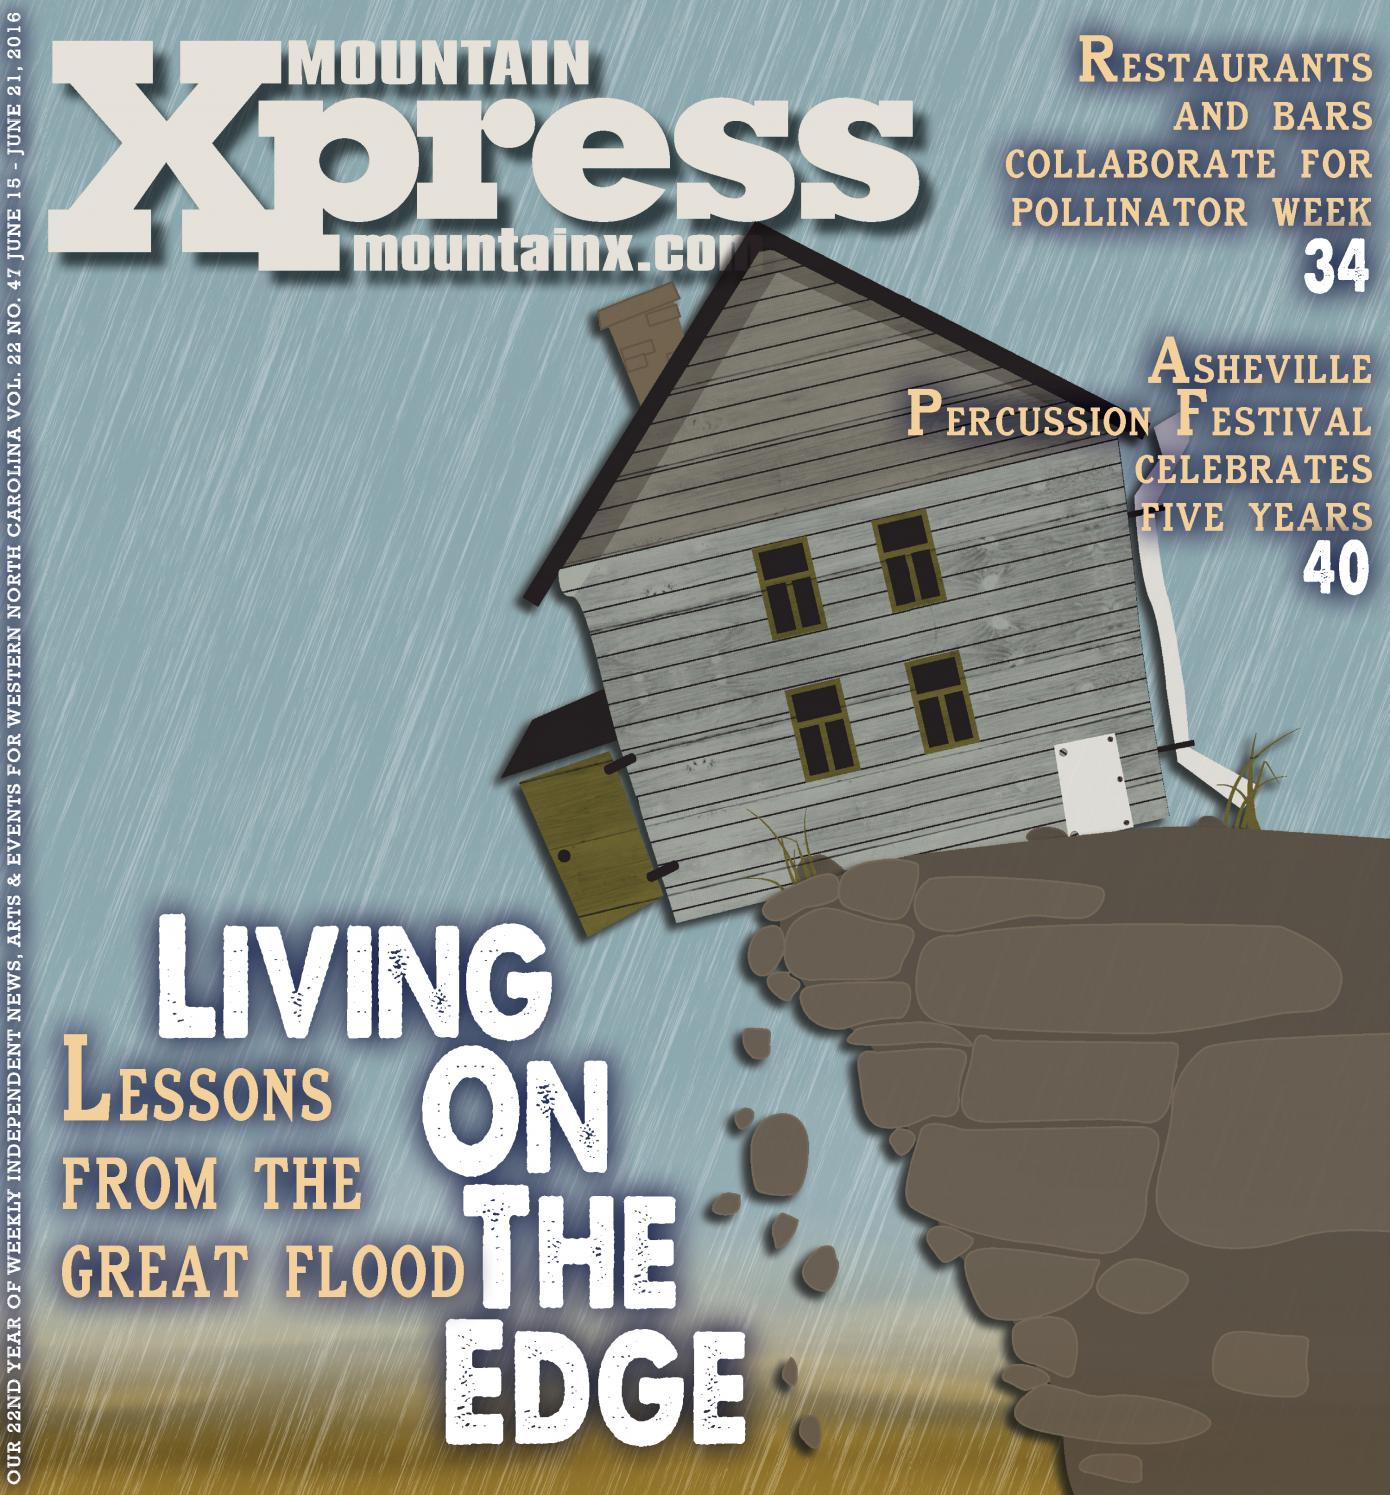 822830f6492 Mountain Xpress 06.15.16 by Mountain Xpress - issuu